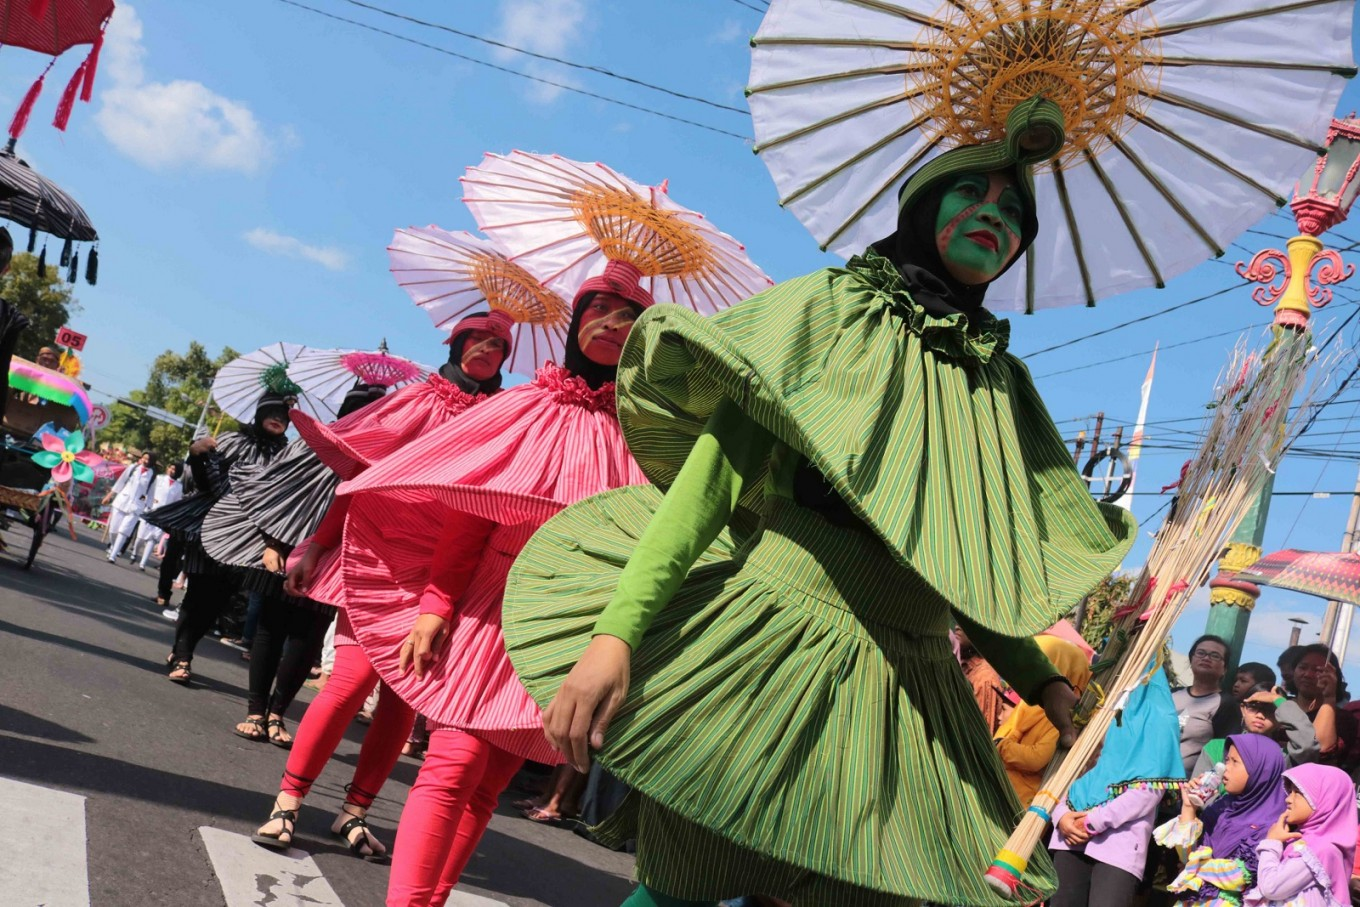 Hundreds of participants take part in the Klaten Lurik Carnival on Jl.  Pemuda, Klaten, Central Java, on July 28. Participants showcased unique costumes made out of 'lurik' fabrics.